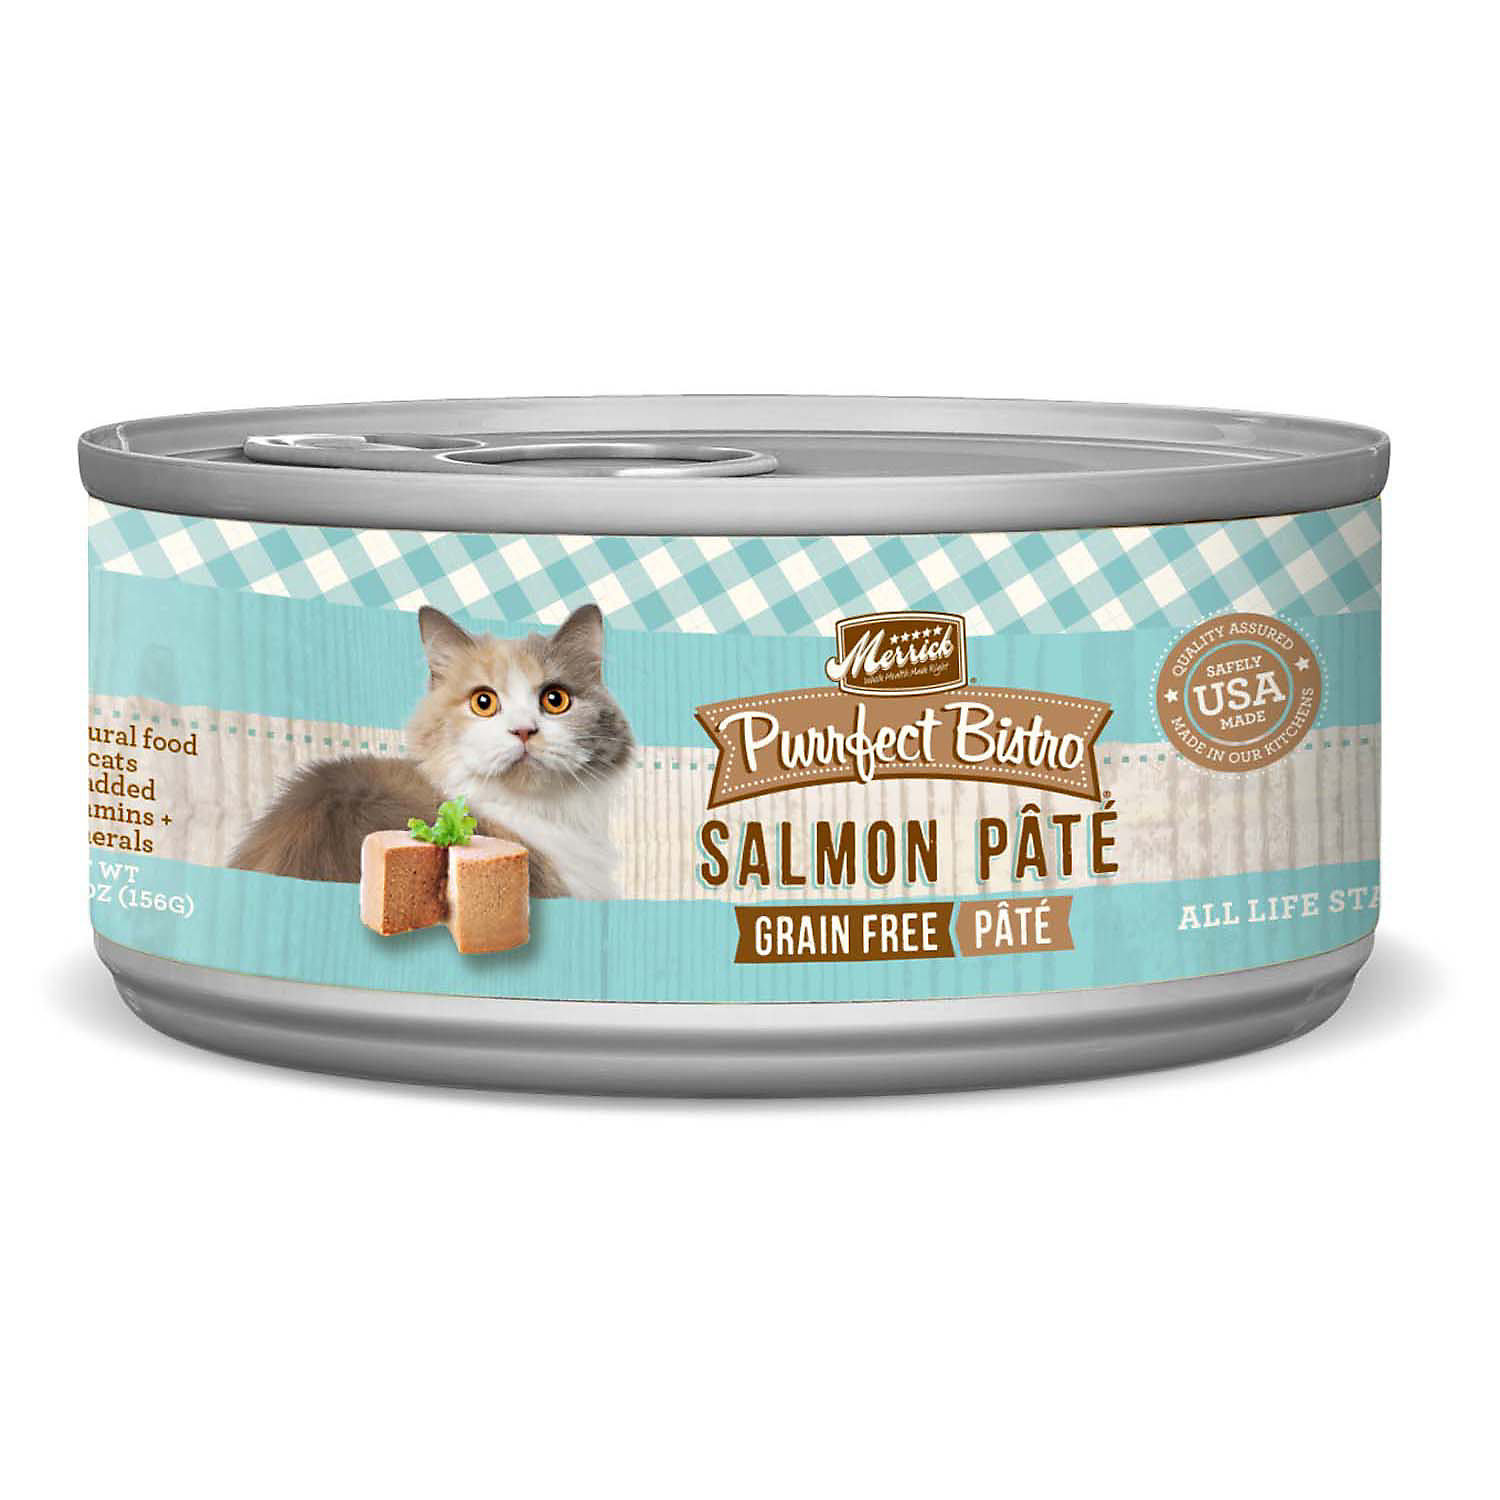 Free Shipping Exclusions: Cat litter, dog litter, ice melter, wild bird food, live fish & rock, aquatic gravel and accents; crickets, live food and frozen food; out-of-stock items, Donations, Petco or Unleashed by Petco Gift Cards and eGift Cards; items shipped through white glove delivery or LTL delivery; orders exceeding the maximum weight limit of lbs.; and applicable taxes.